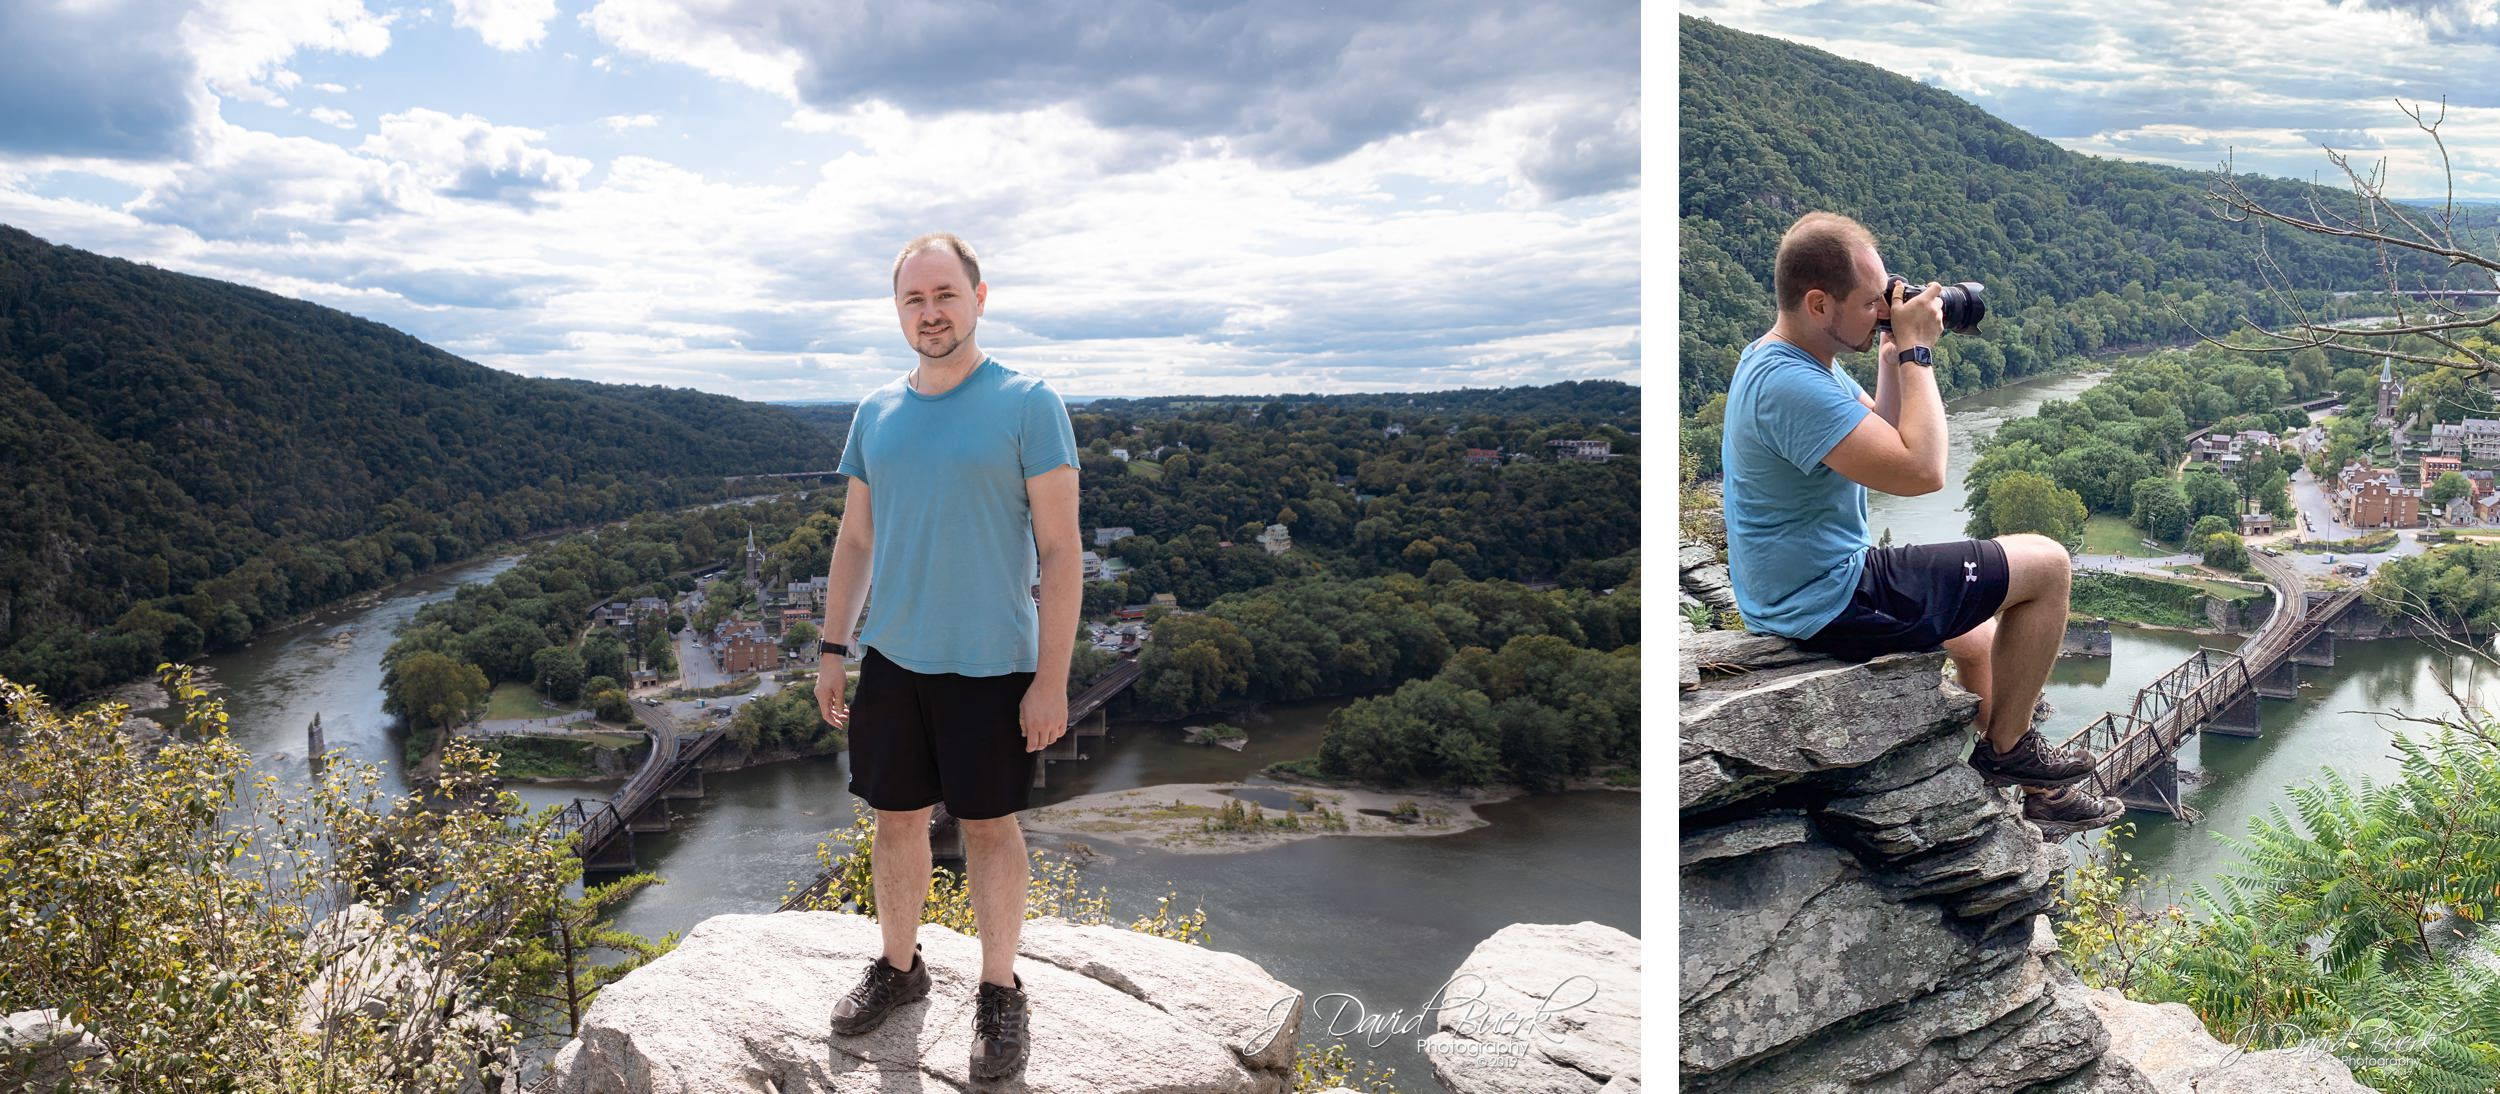 20190824 - Harpers Ferry Maryland Heights Trail Hike 5.jpg